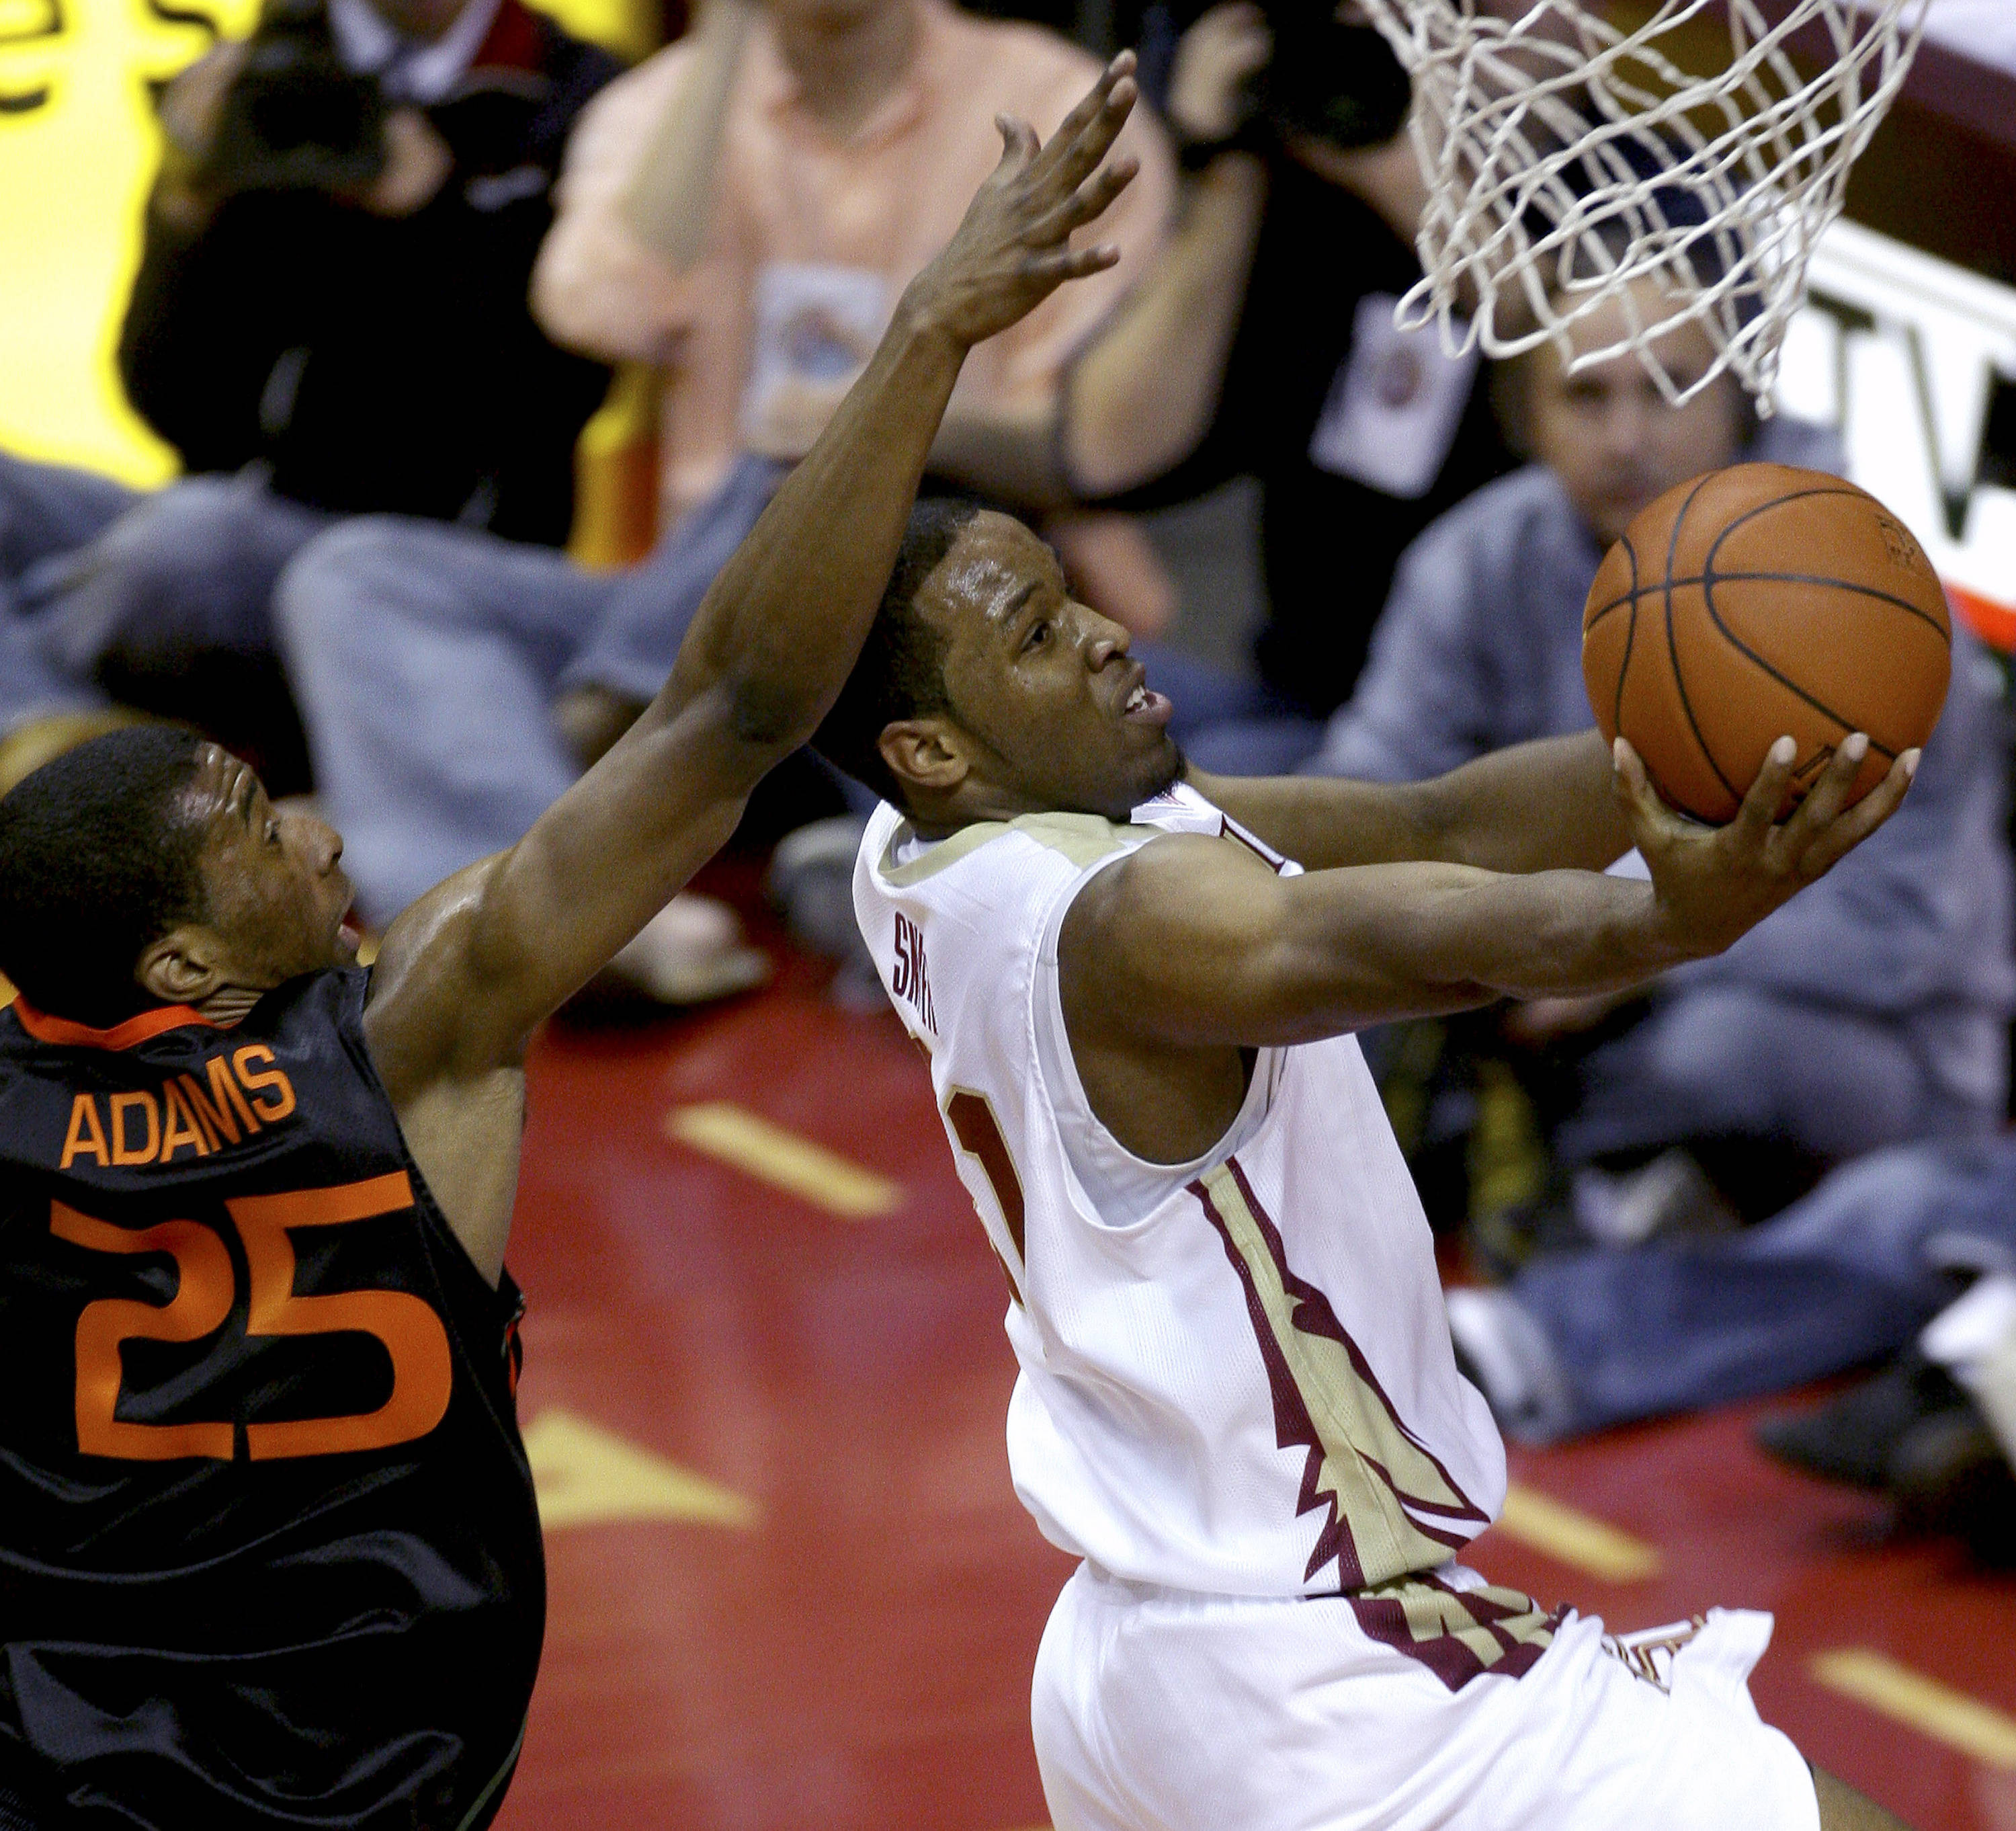 Florida State's Michael Snaer, right, drives past Miami's Garrius Adams for two first-half points during an NCAA college basketball game, Saturday, Feb. 6, 2010, in Tallahassee, Fla. (AP Photo/Phil Coale)